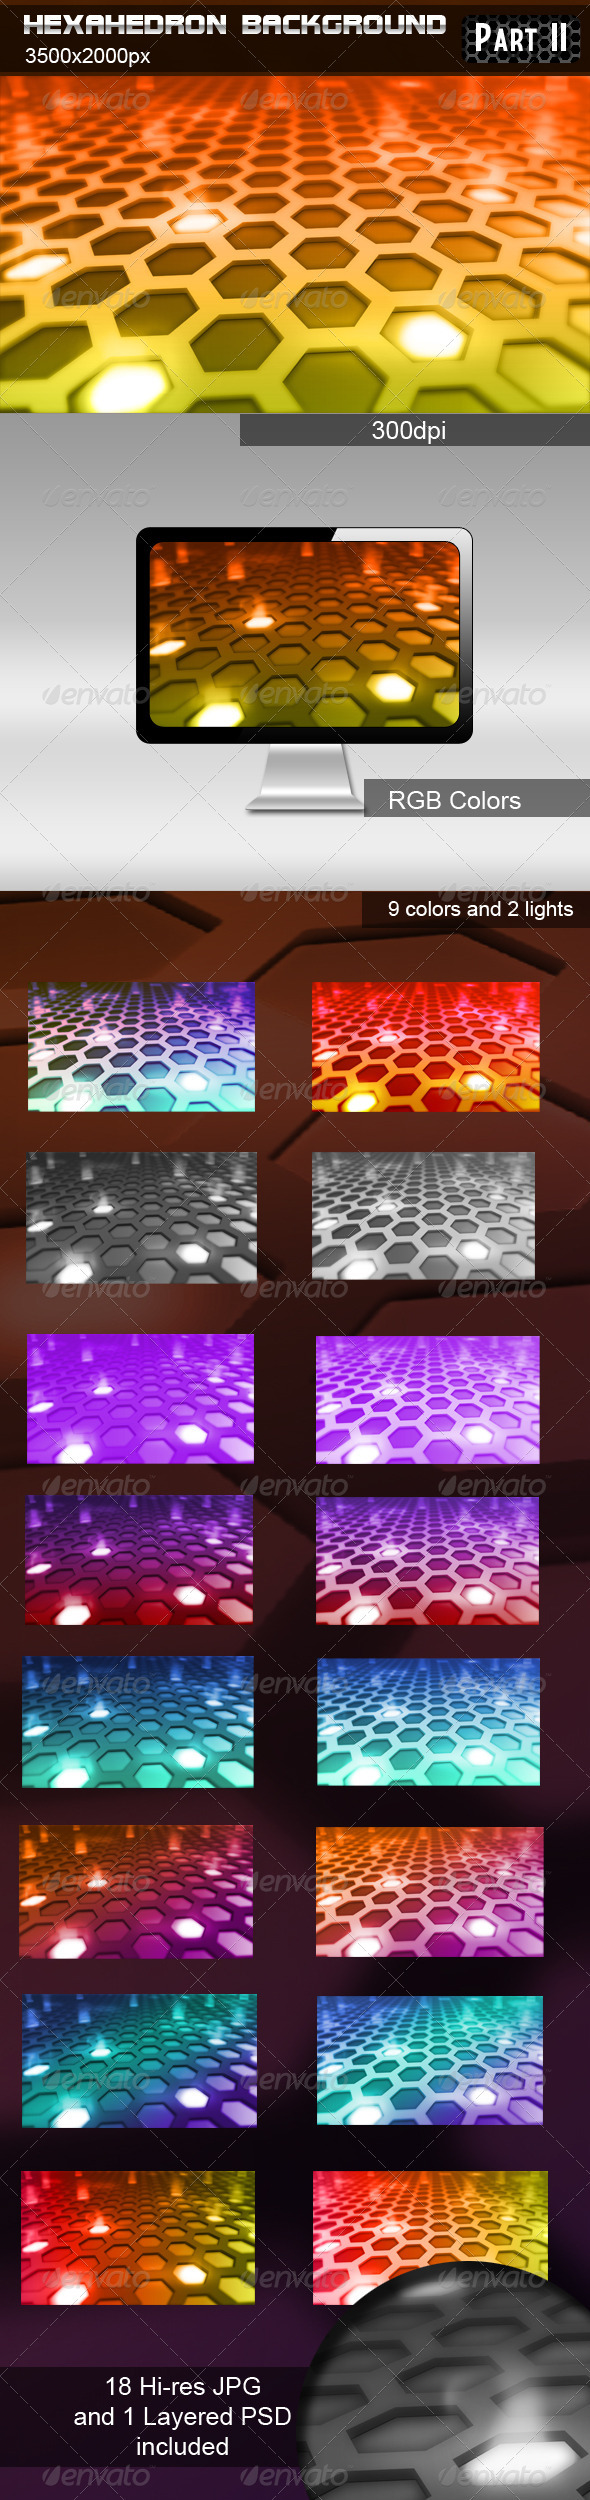 GraphicRiver Hexahedron Background part 2 574840